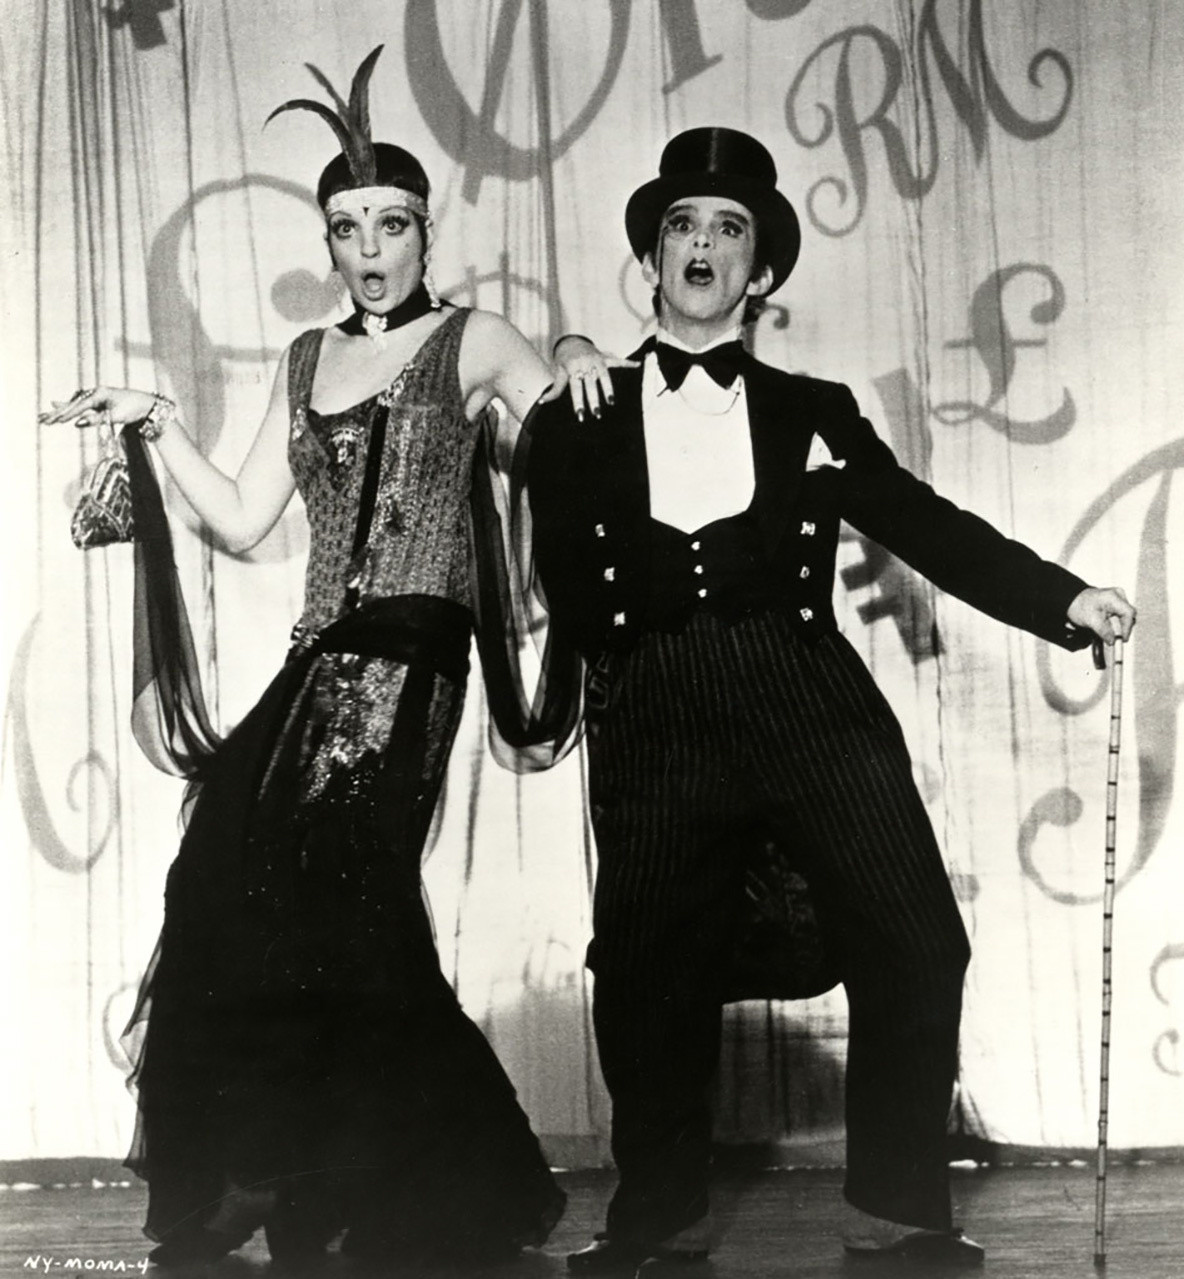 Cabaret. 1972. USA. Directed by Bob Fosse